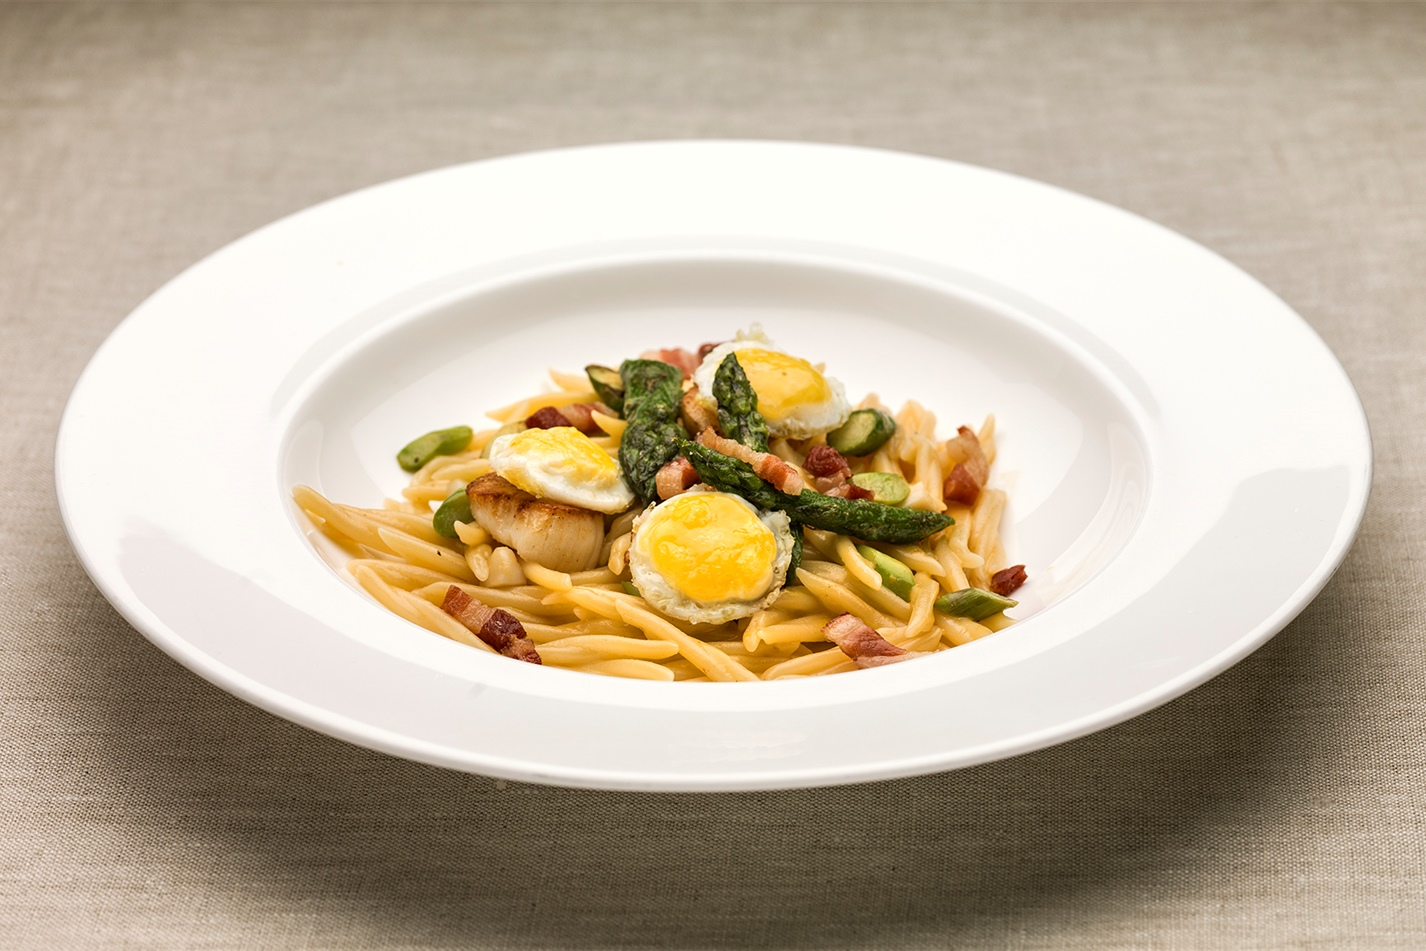 Yoshi Yamada, Japan – Trofie with pan-fried scallops, pancetta, asparagus and quail eggs